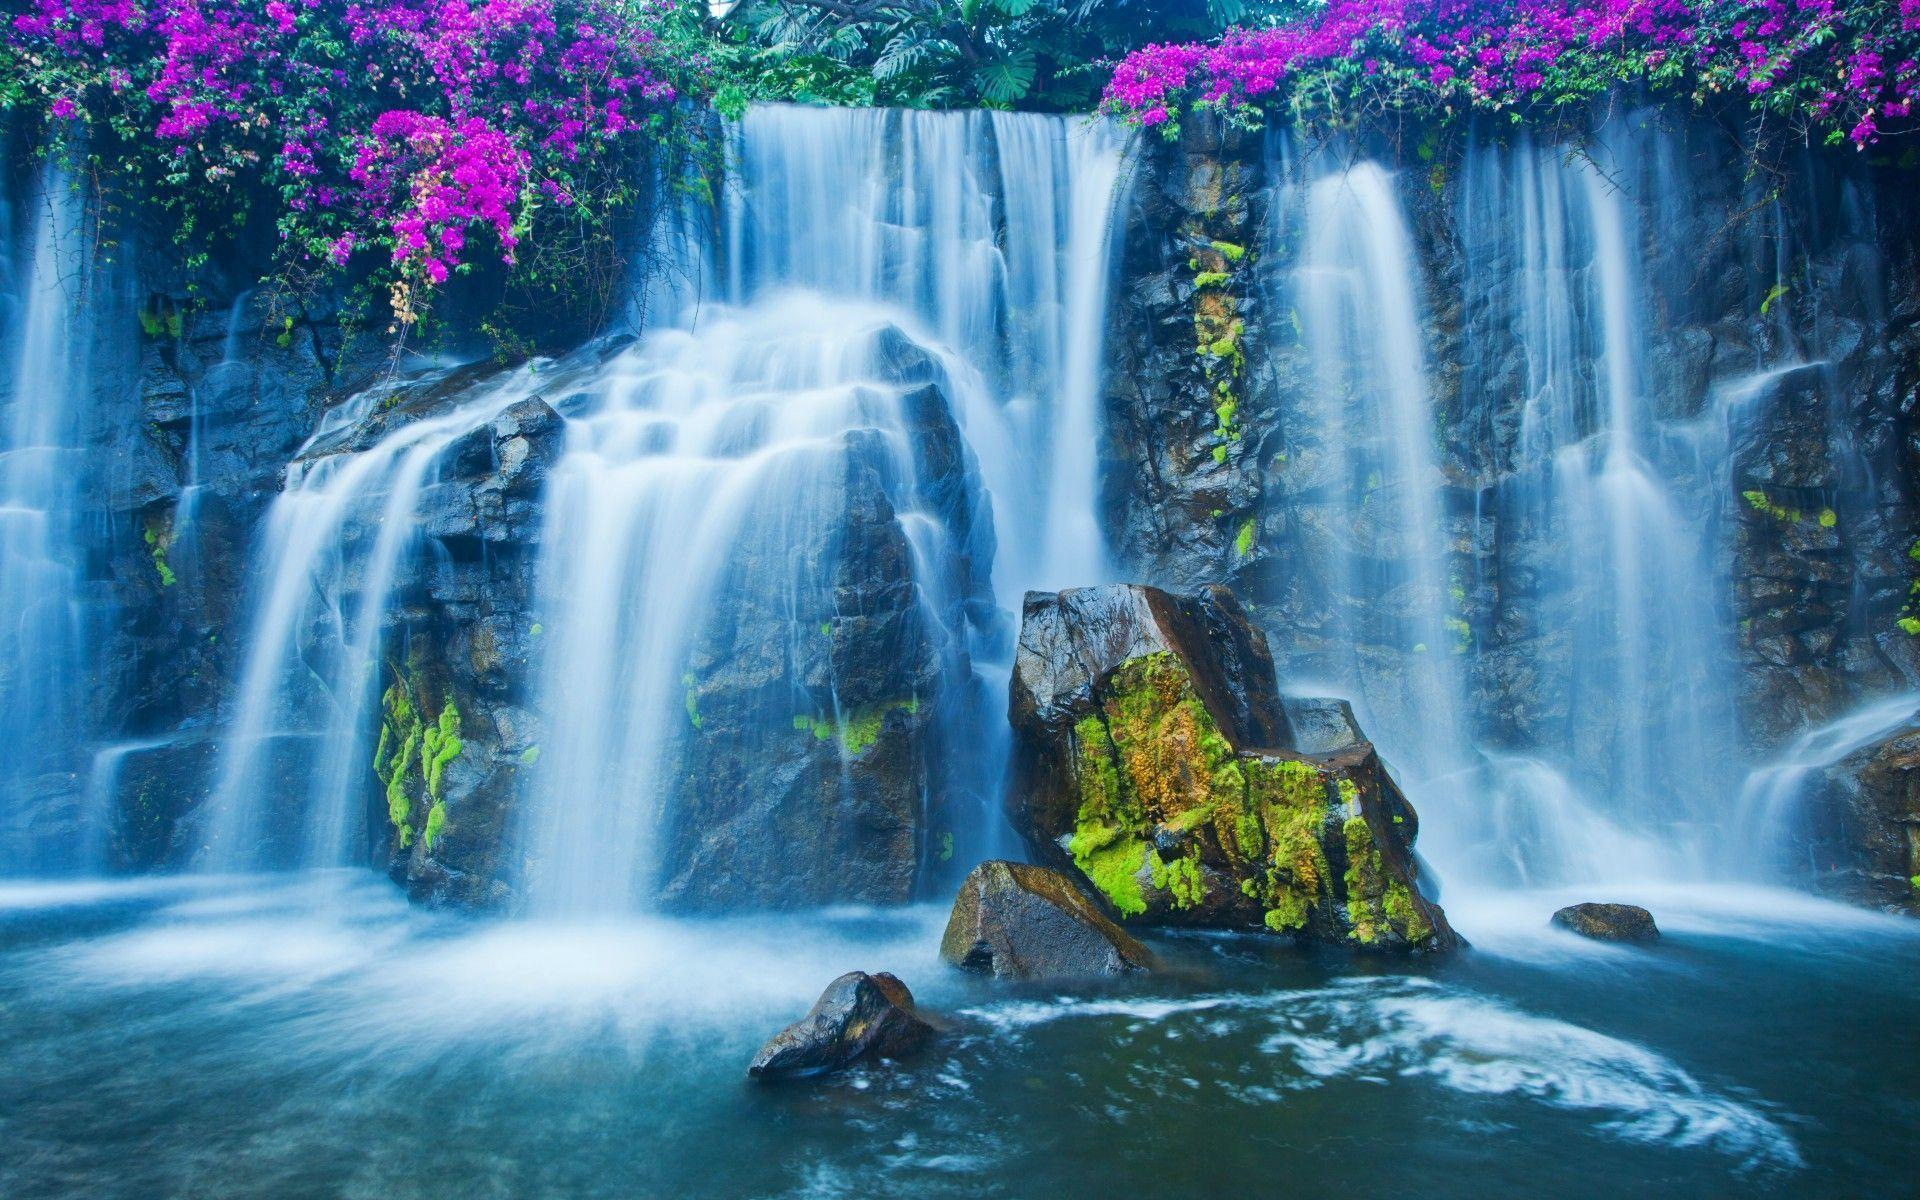 stones, moss, flowers, waterfall wallpapers